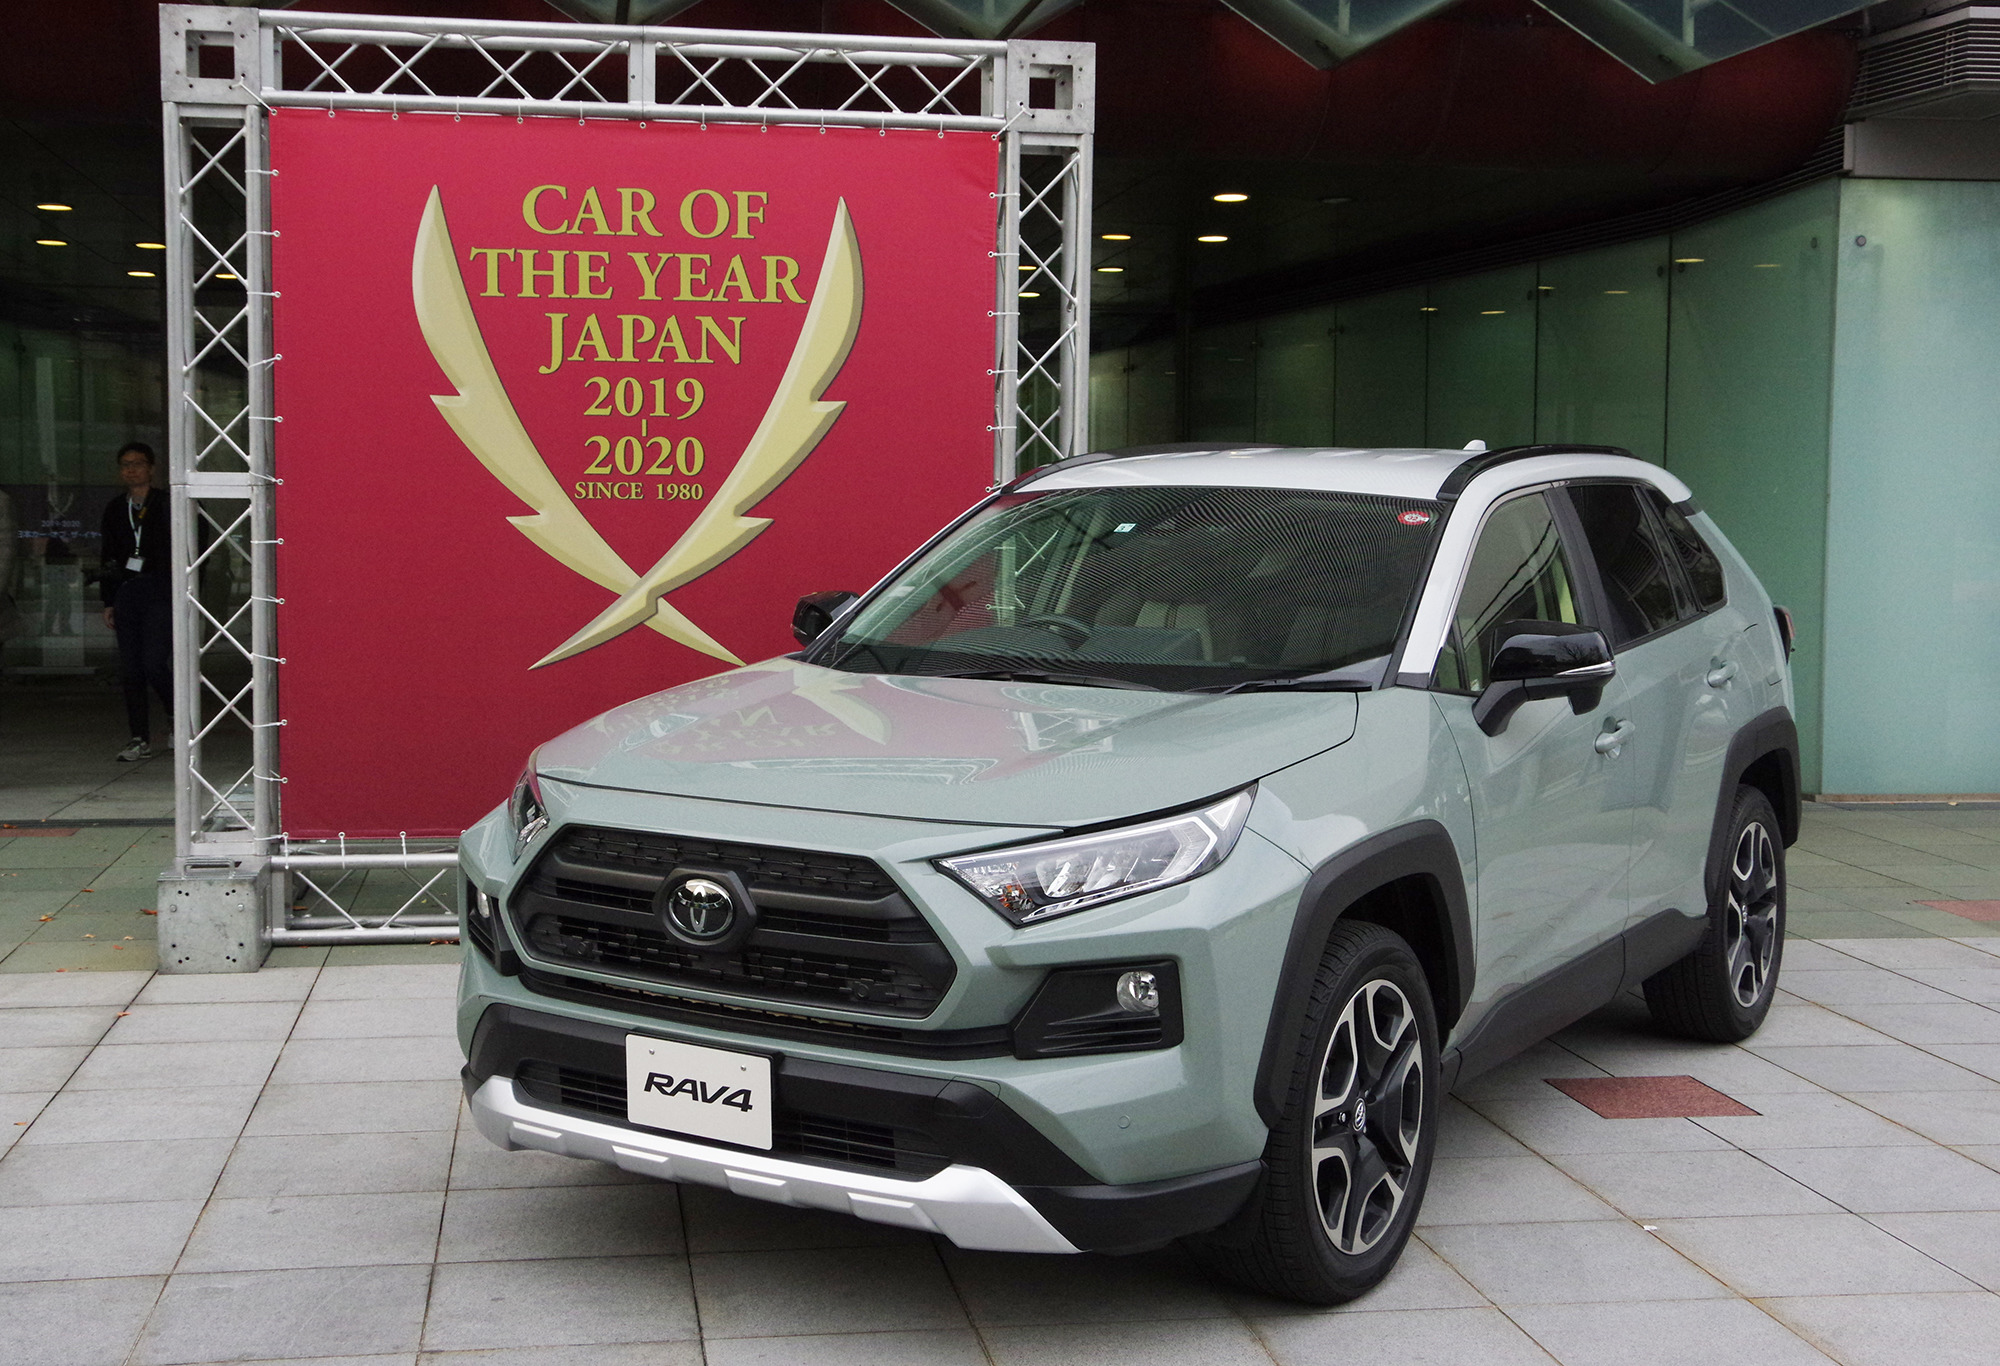 The RAV4 is now officially Japan's car of choice No. 1, followed by the Mazda3 and the BMW 3 Series.